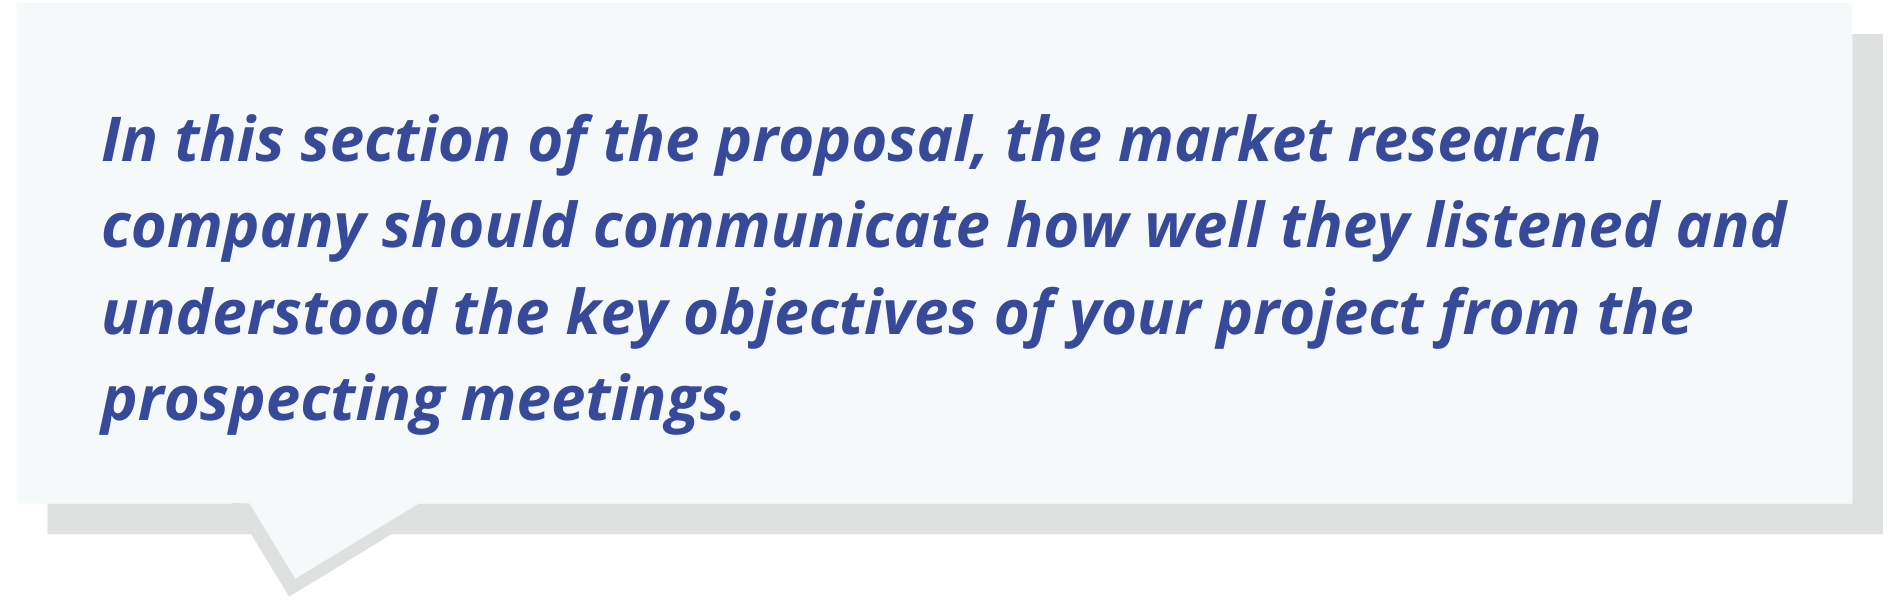 In this section of the proposal, the market research company should communicate how well they listened and understood the key objectives of your project from the prospecting meetings.